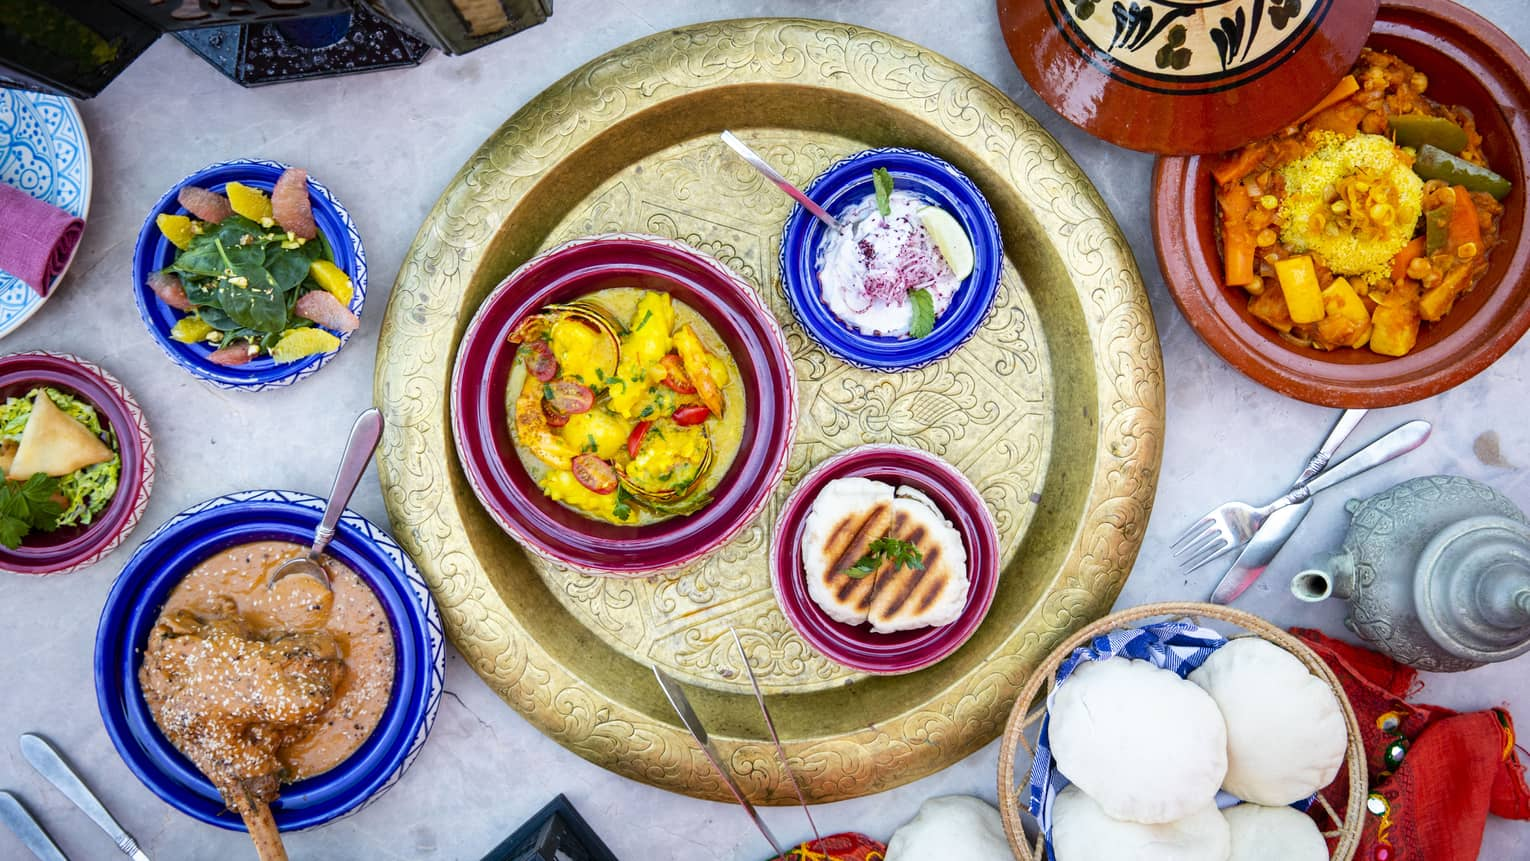 A colourful assortment of dishes at Al Barakat